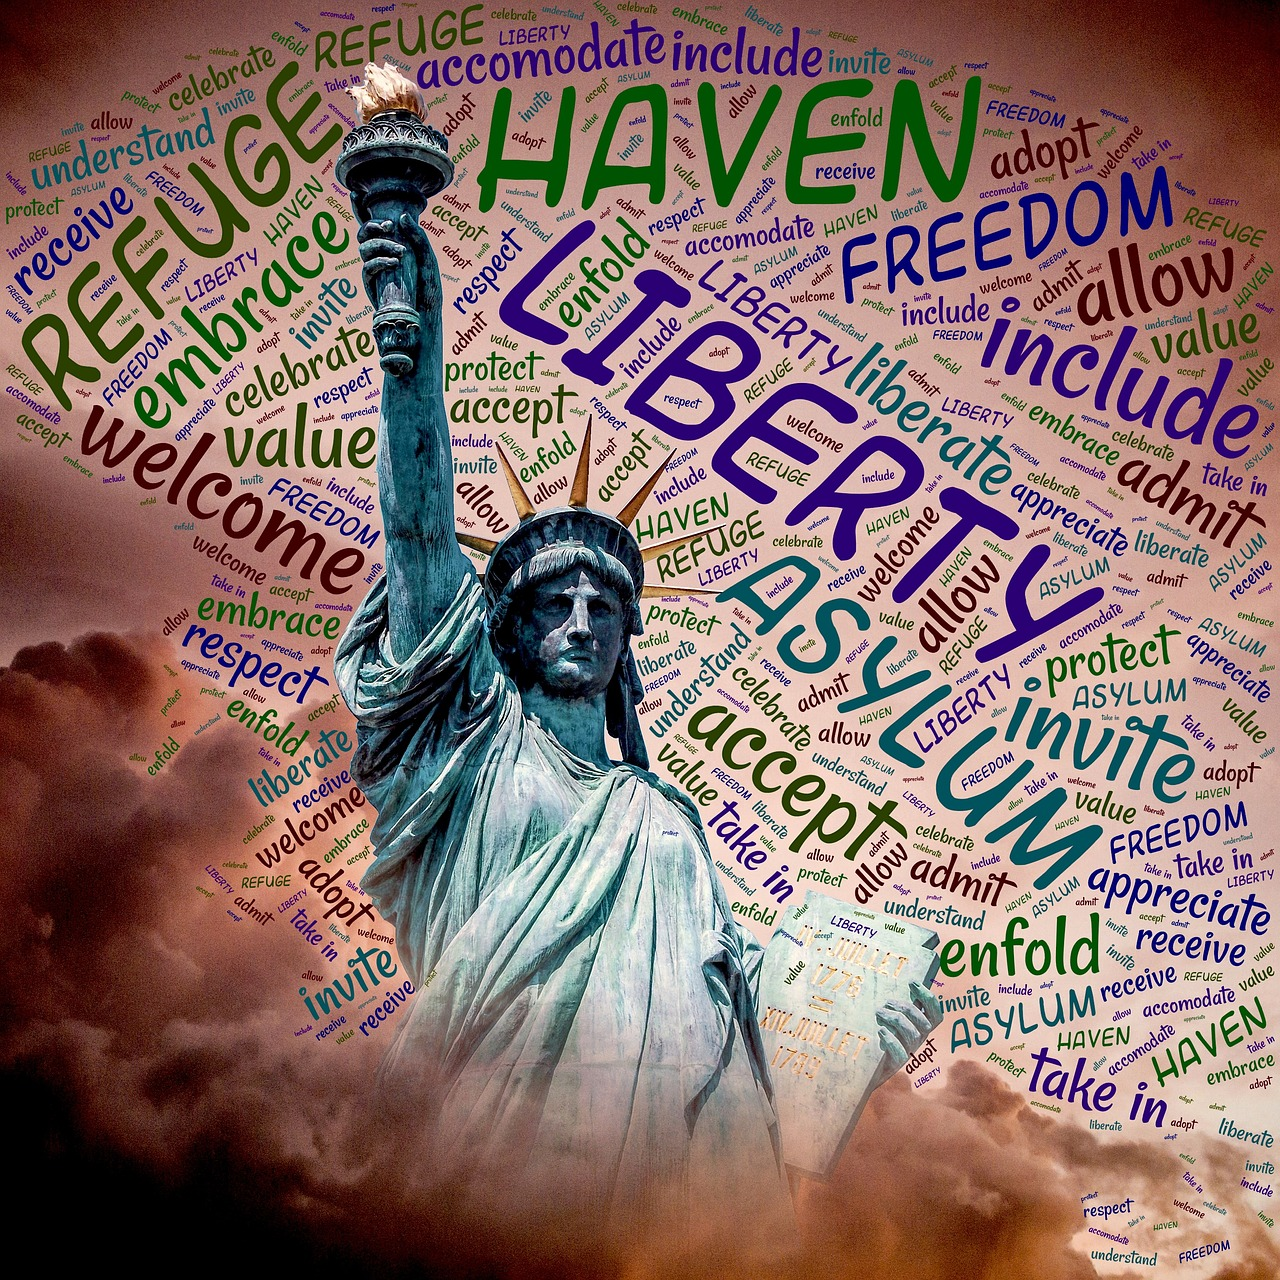 welcome,liberty,include,america,statue,symbol,monument,freedom,invite,accept,immigration,embrace,usa,travel,refuge,refugees,displaced,haven,asylum,free pictures, free photos, free images, royalty free, free illustrations, public domain